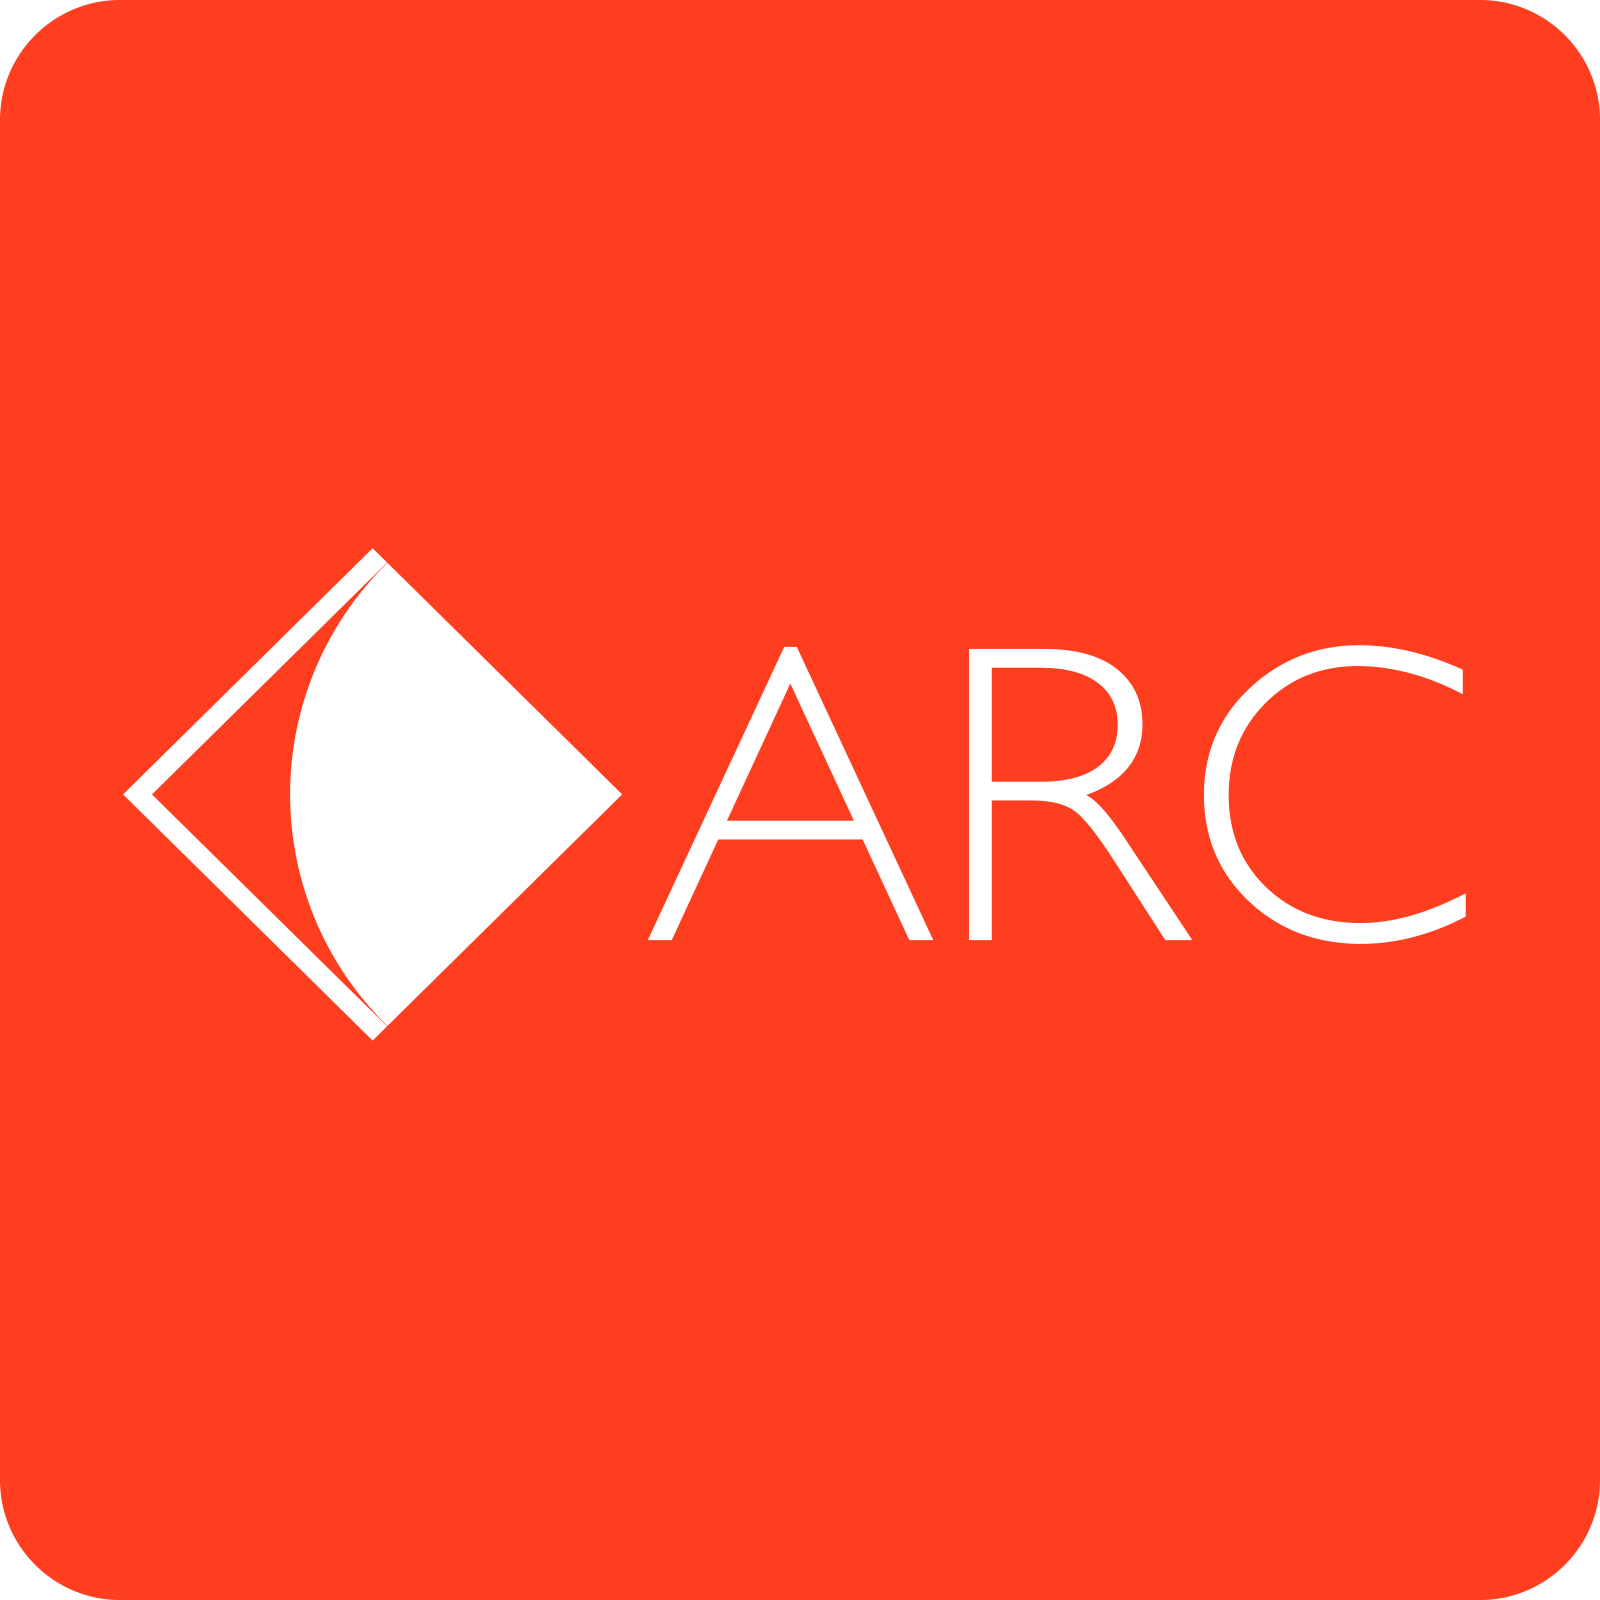 arc logo square 1600